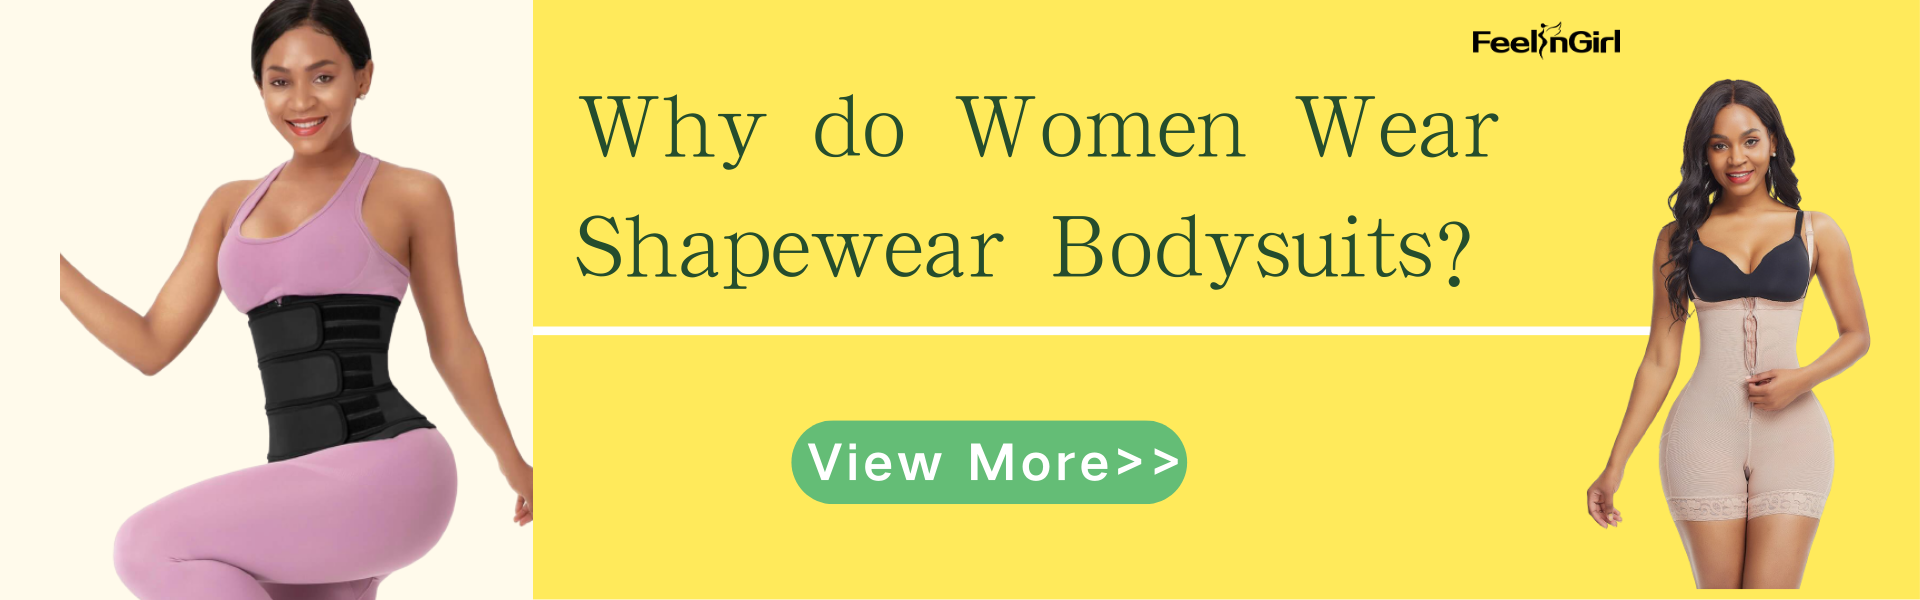 Why do Women Wear Shapewear Bodysuits?